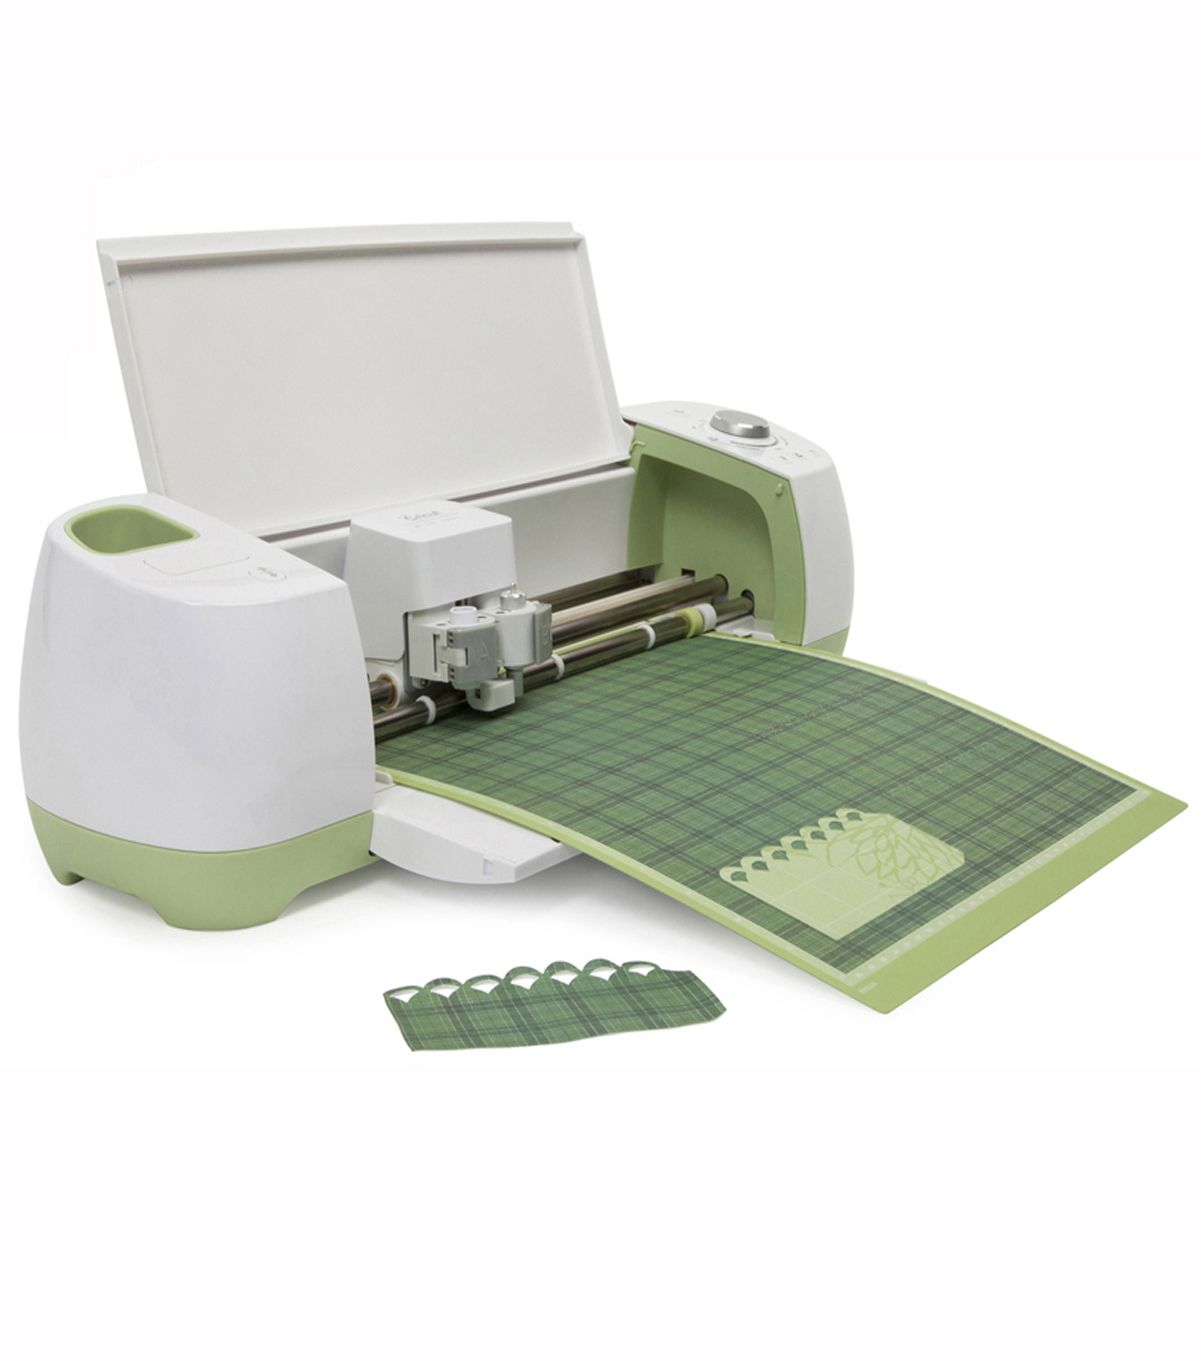 I Need This Cricut Explore Machine I Want To Make My Own Projects